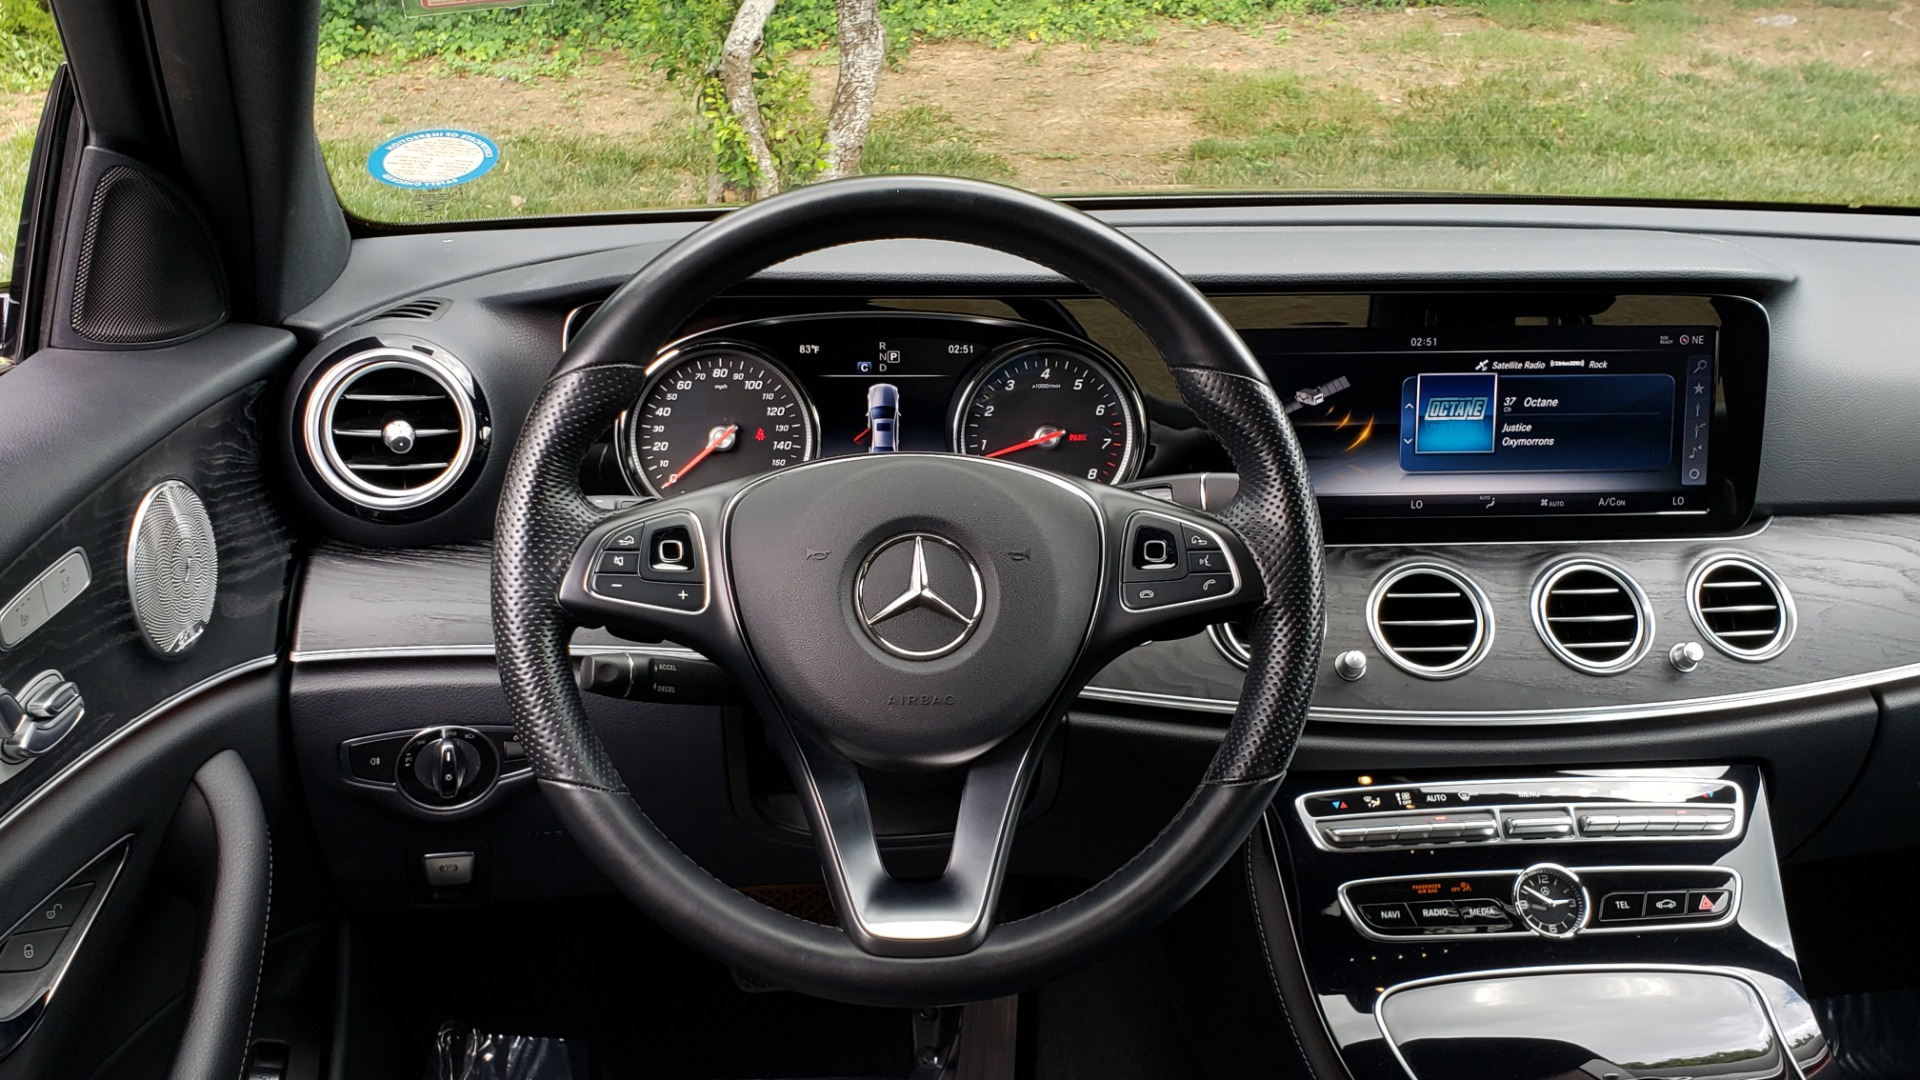 Used 2017 Mercedes-Benz E-CLASS E 300 SPORT 4MATIC / PREM PKG / NAV / SUNROOF / BURMESTER SND / REARVIEW for sale Sold at Formula Imports in Charlotte NC 28227 35